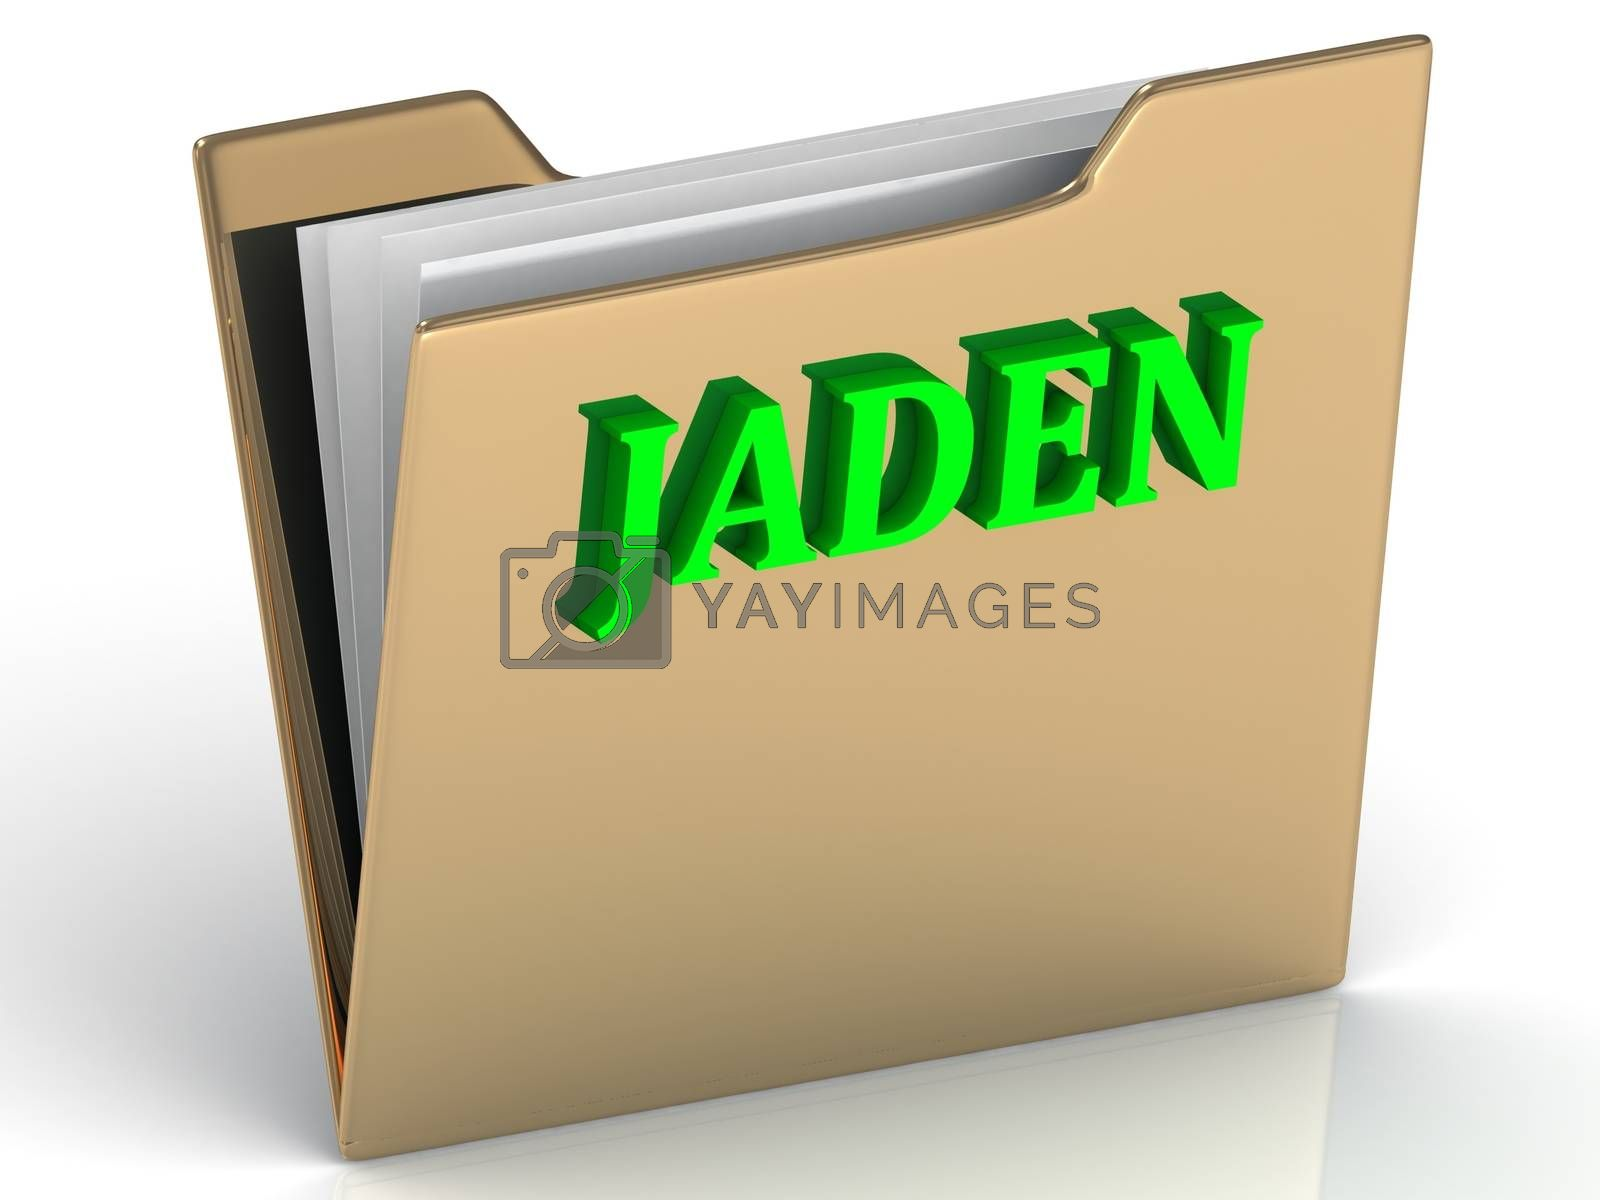 JADEN- Name and Family bright letters on gold folder on a white backgJADEN- bright green letters on gold paperwork folder on a white backgroundround